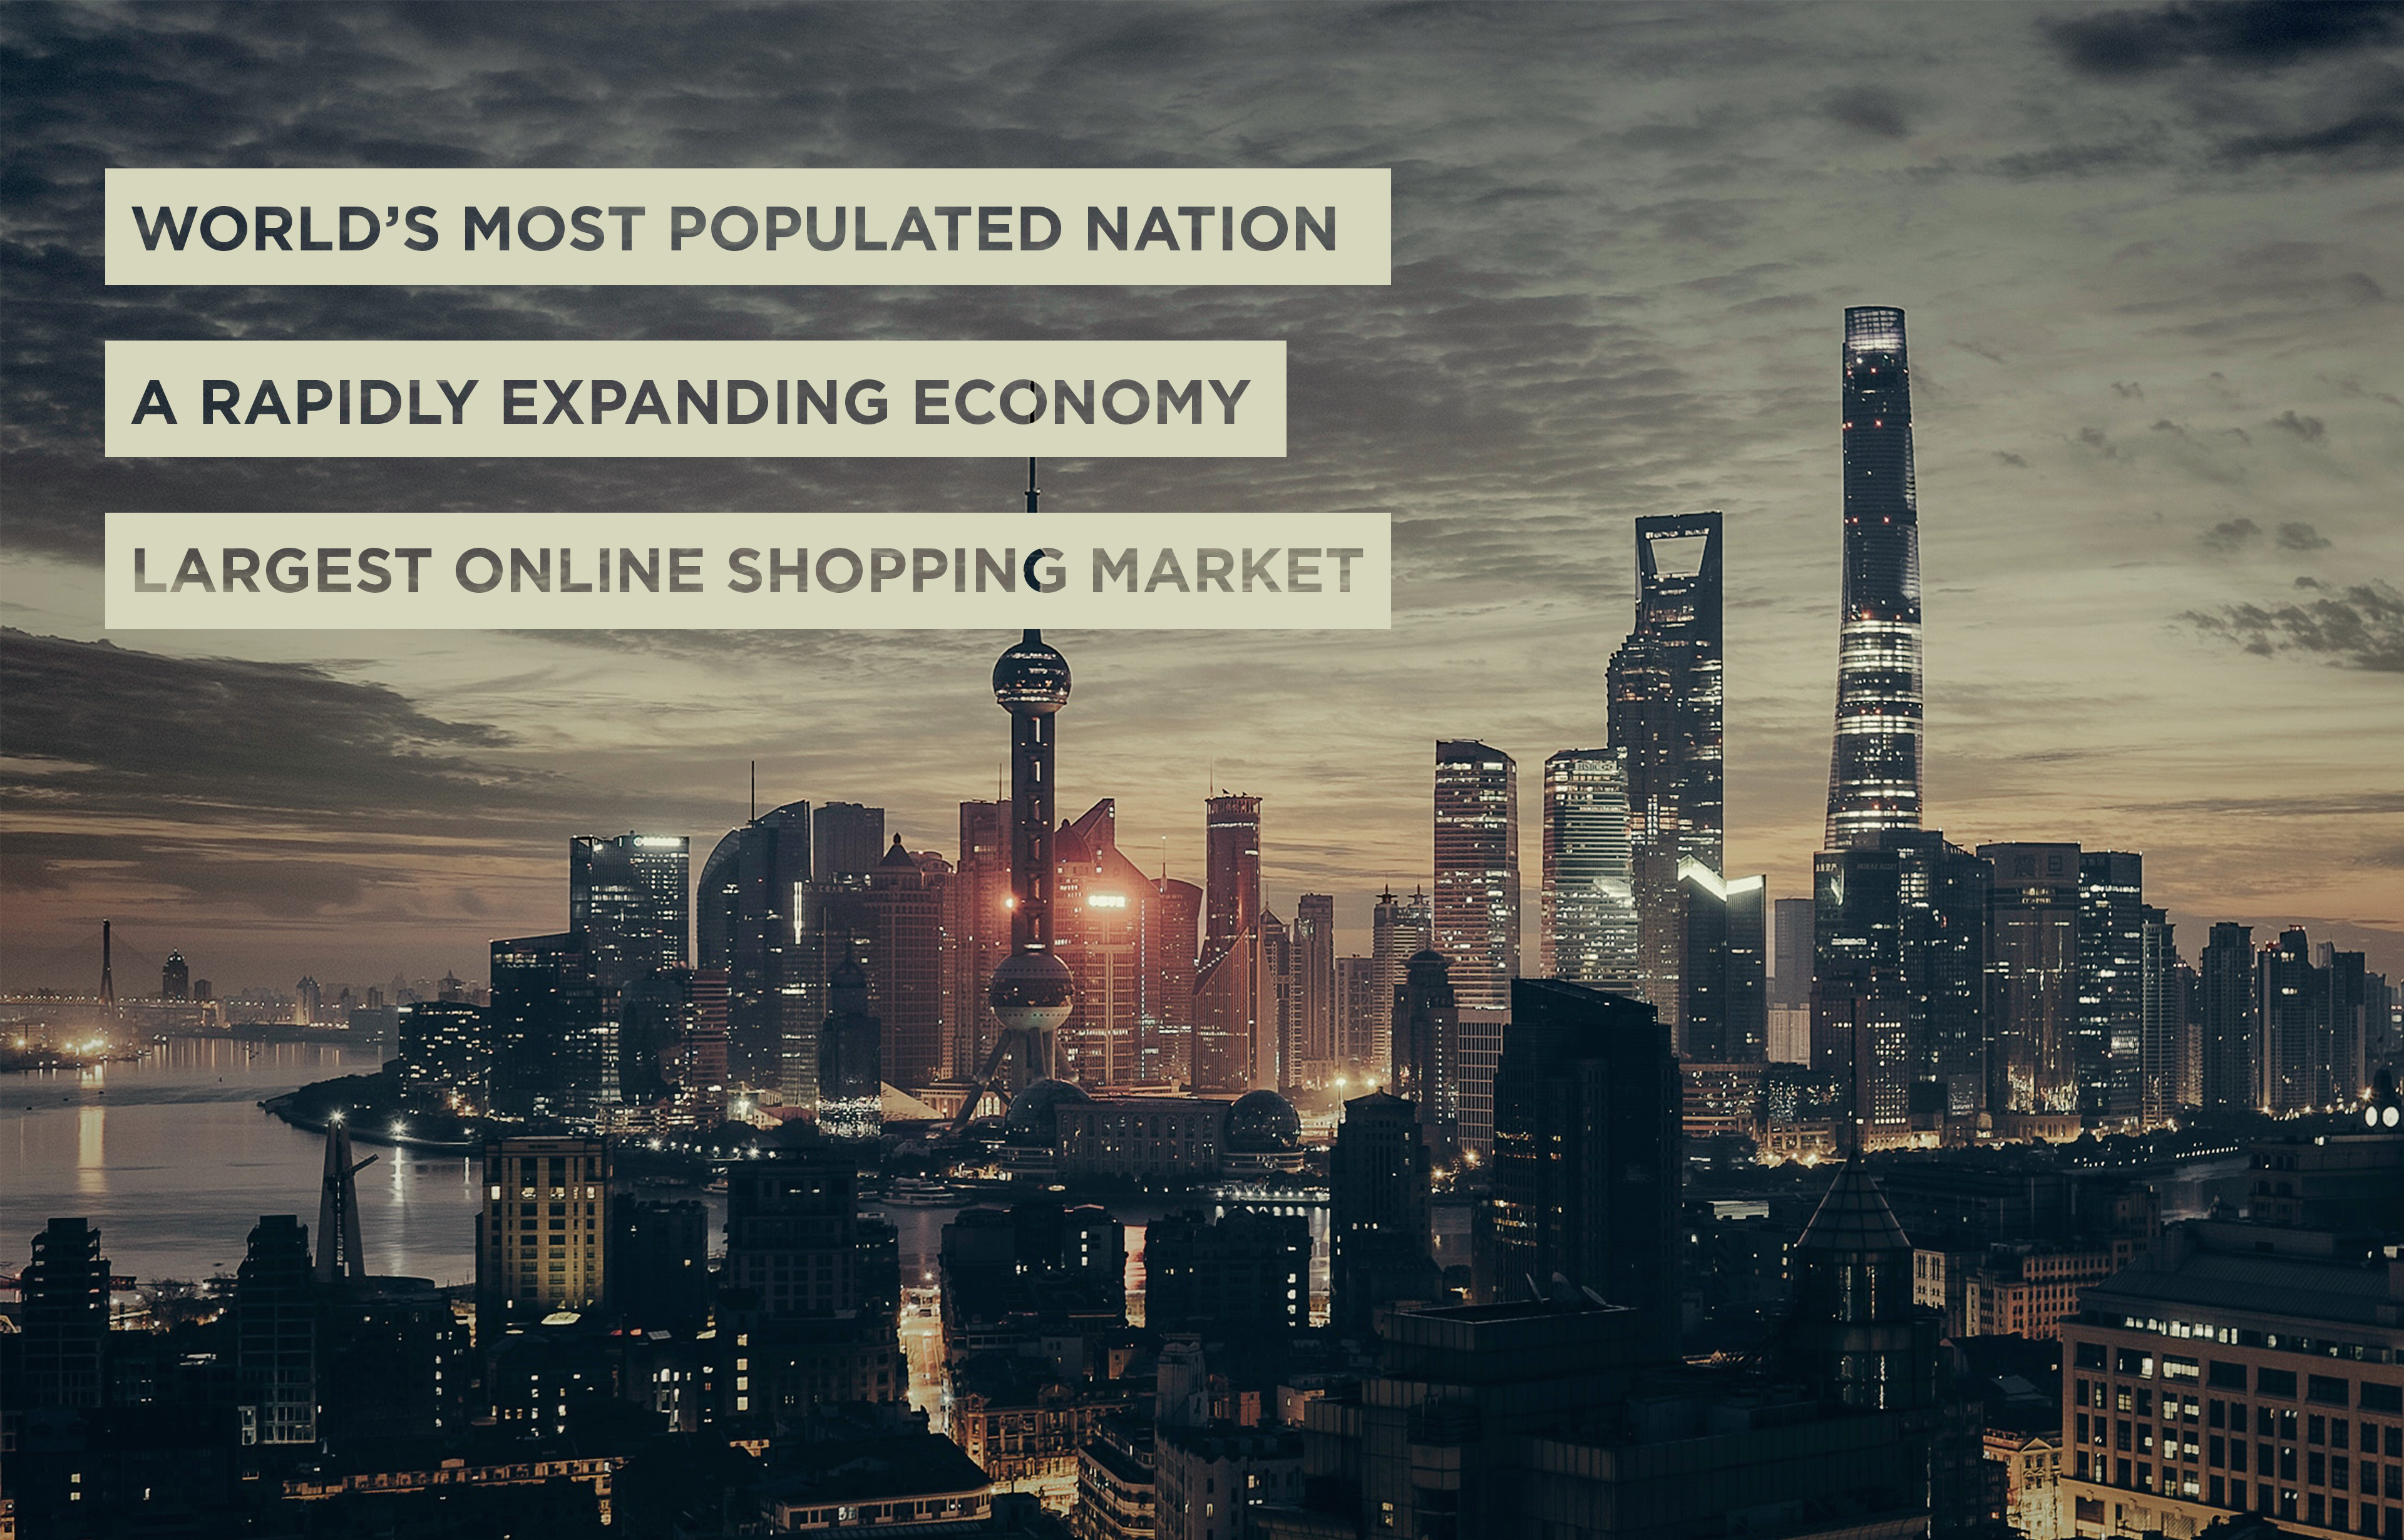 """Image of Shanghai with text that reads: """"World's most populated nation; A rapidly expanding economy; Largest online shopping market."""